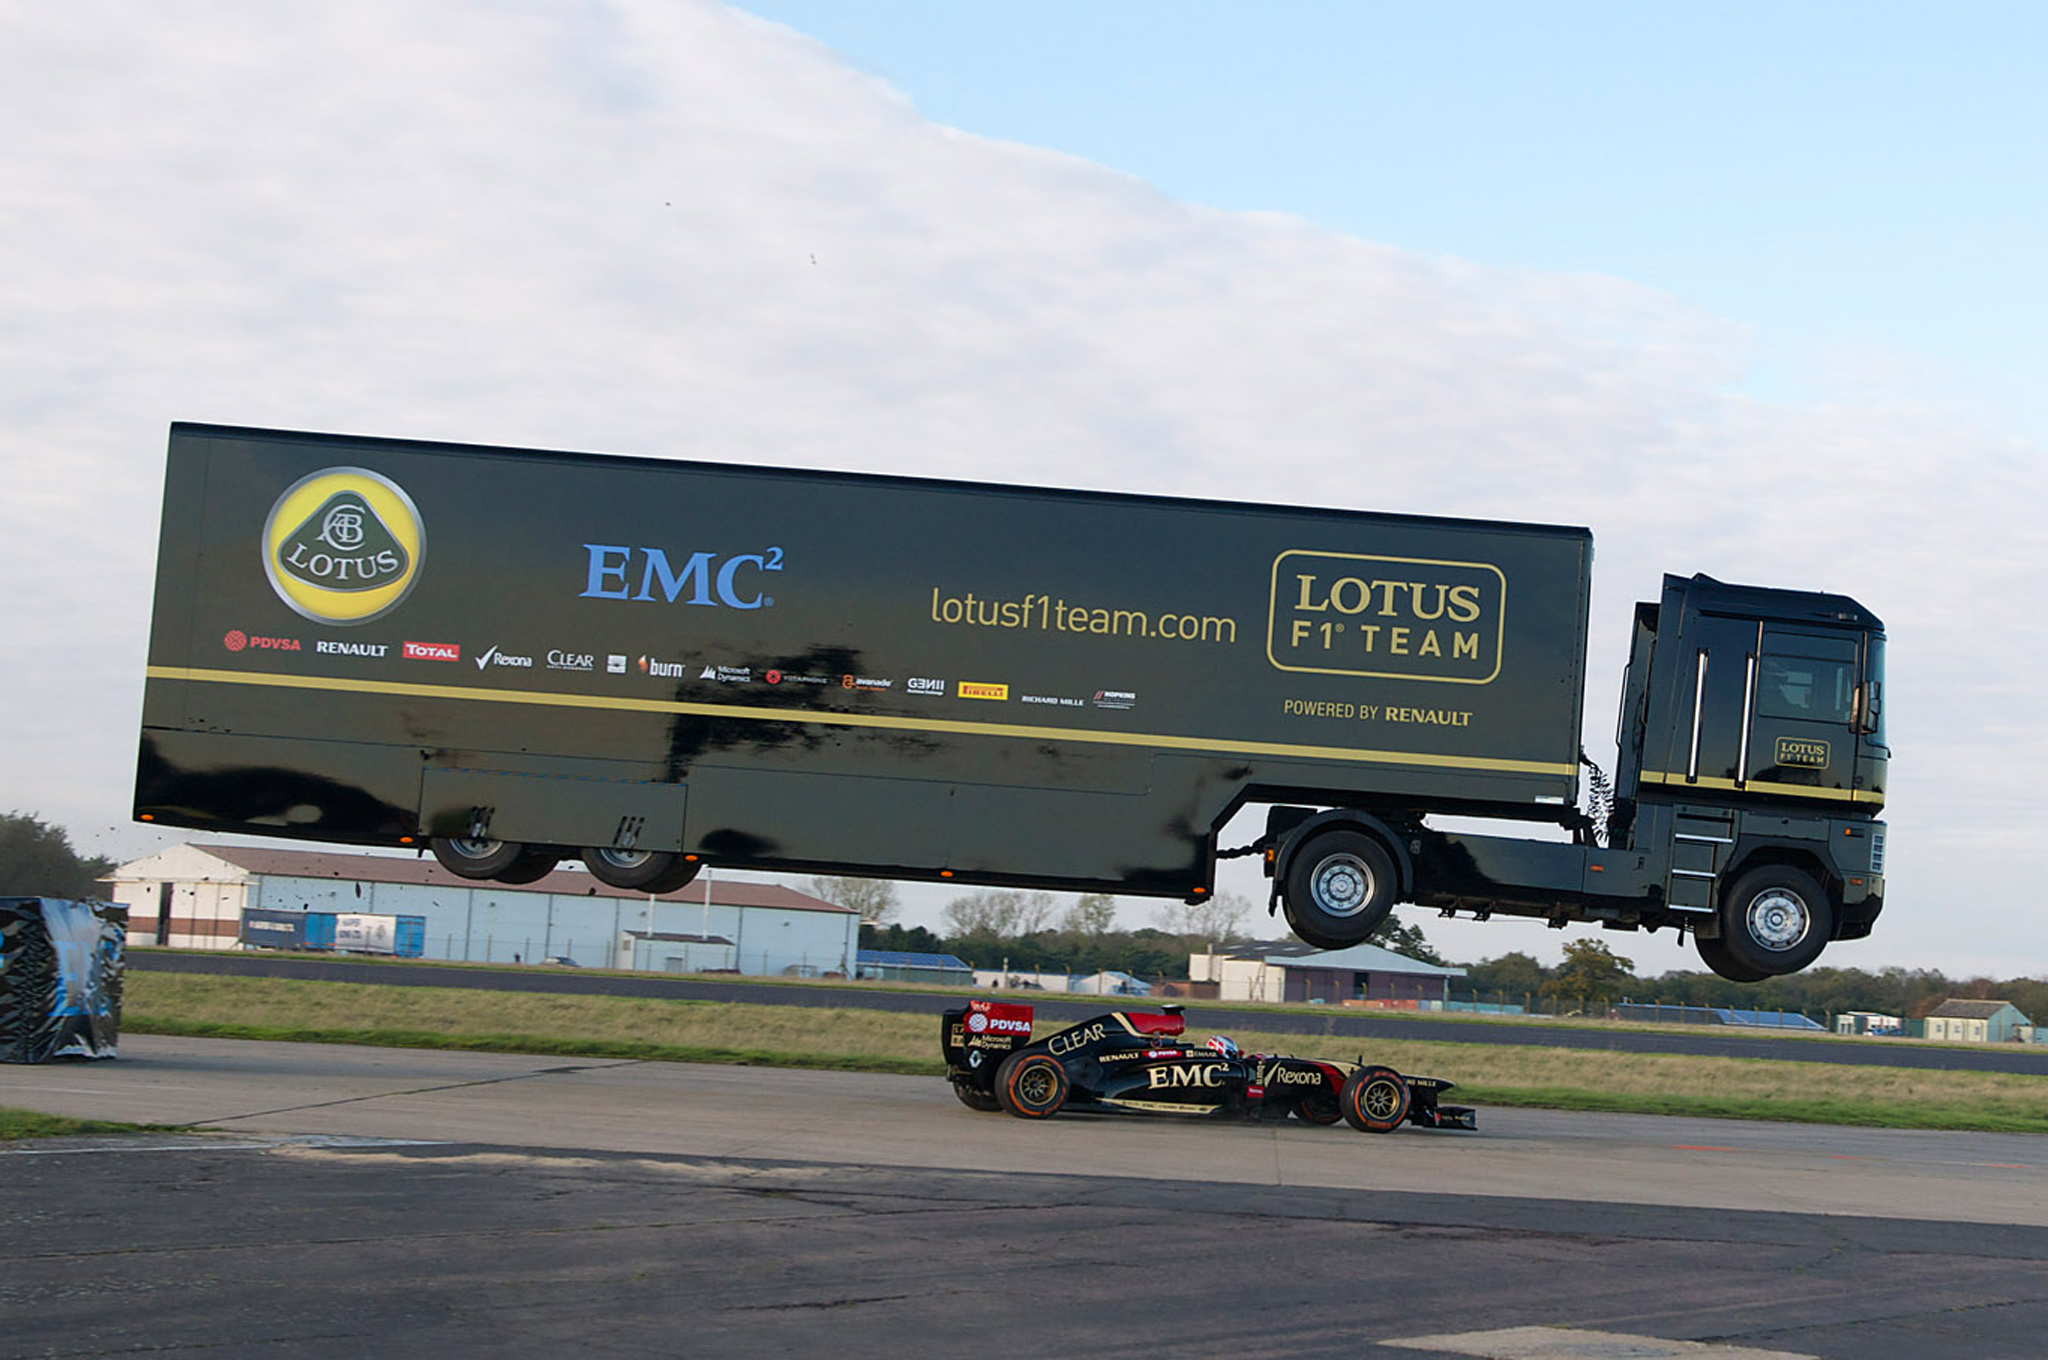 Lotus F1 Ends 2014 Season by Racing Under an Airborne Semi-Truck